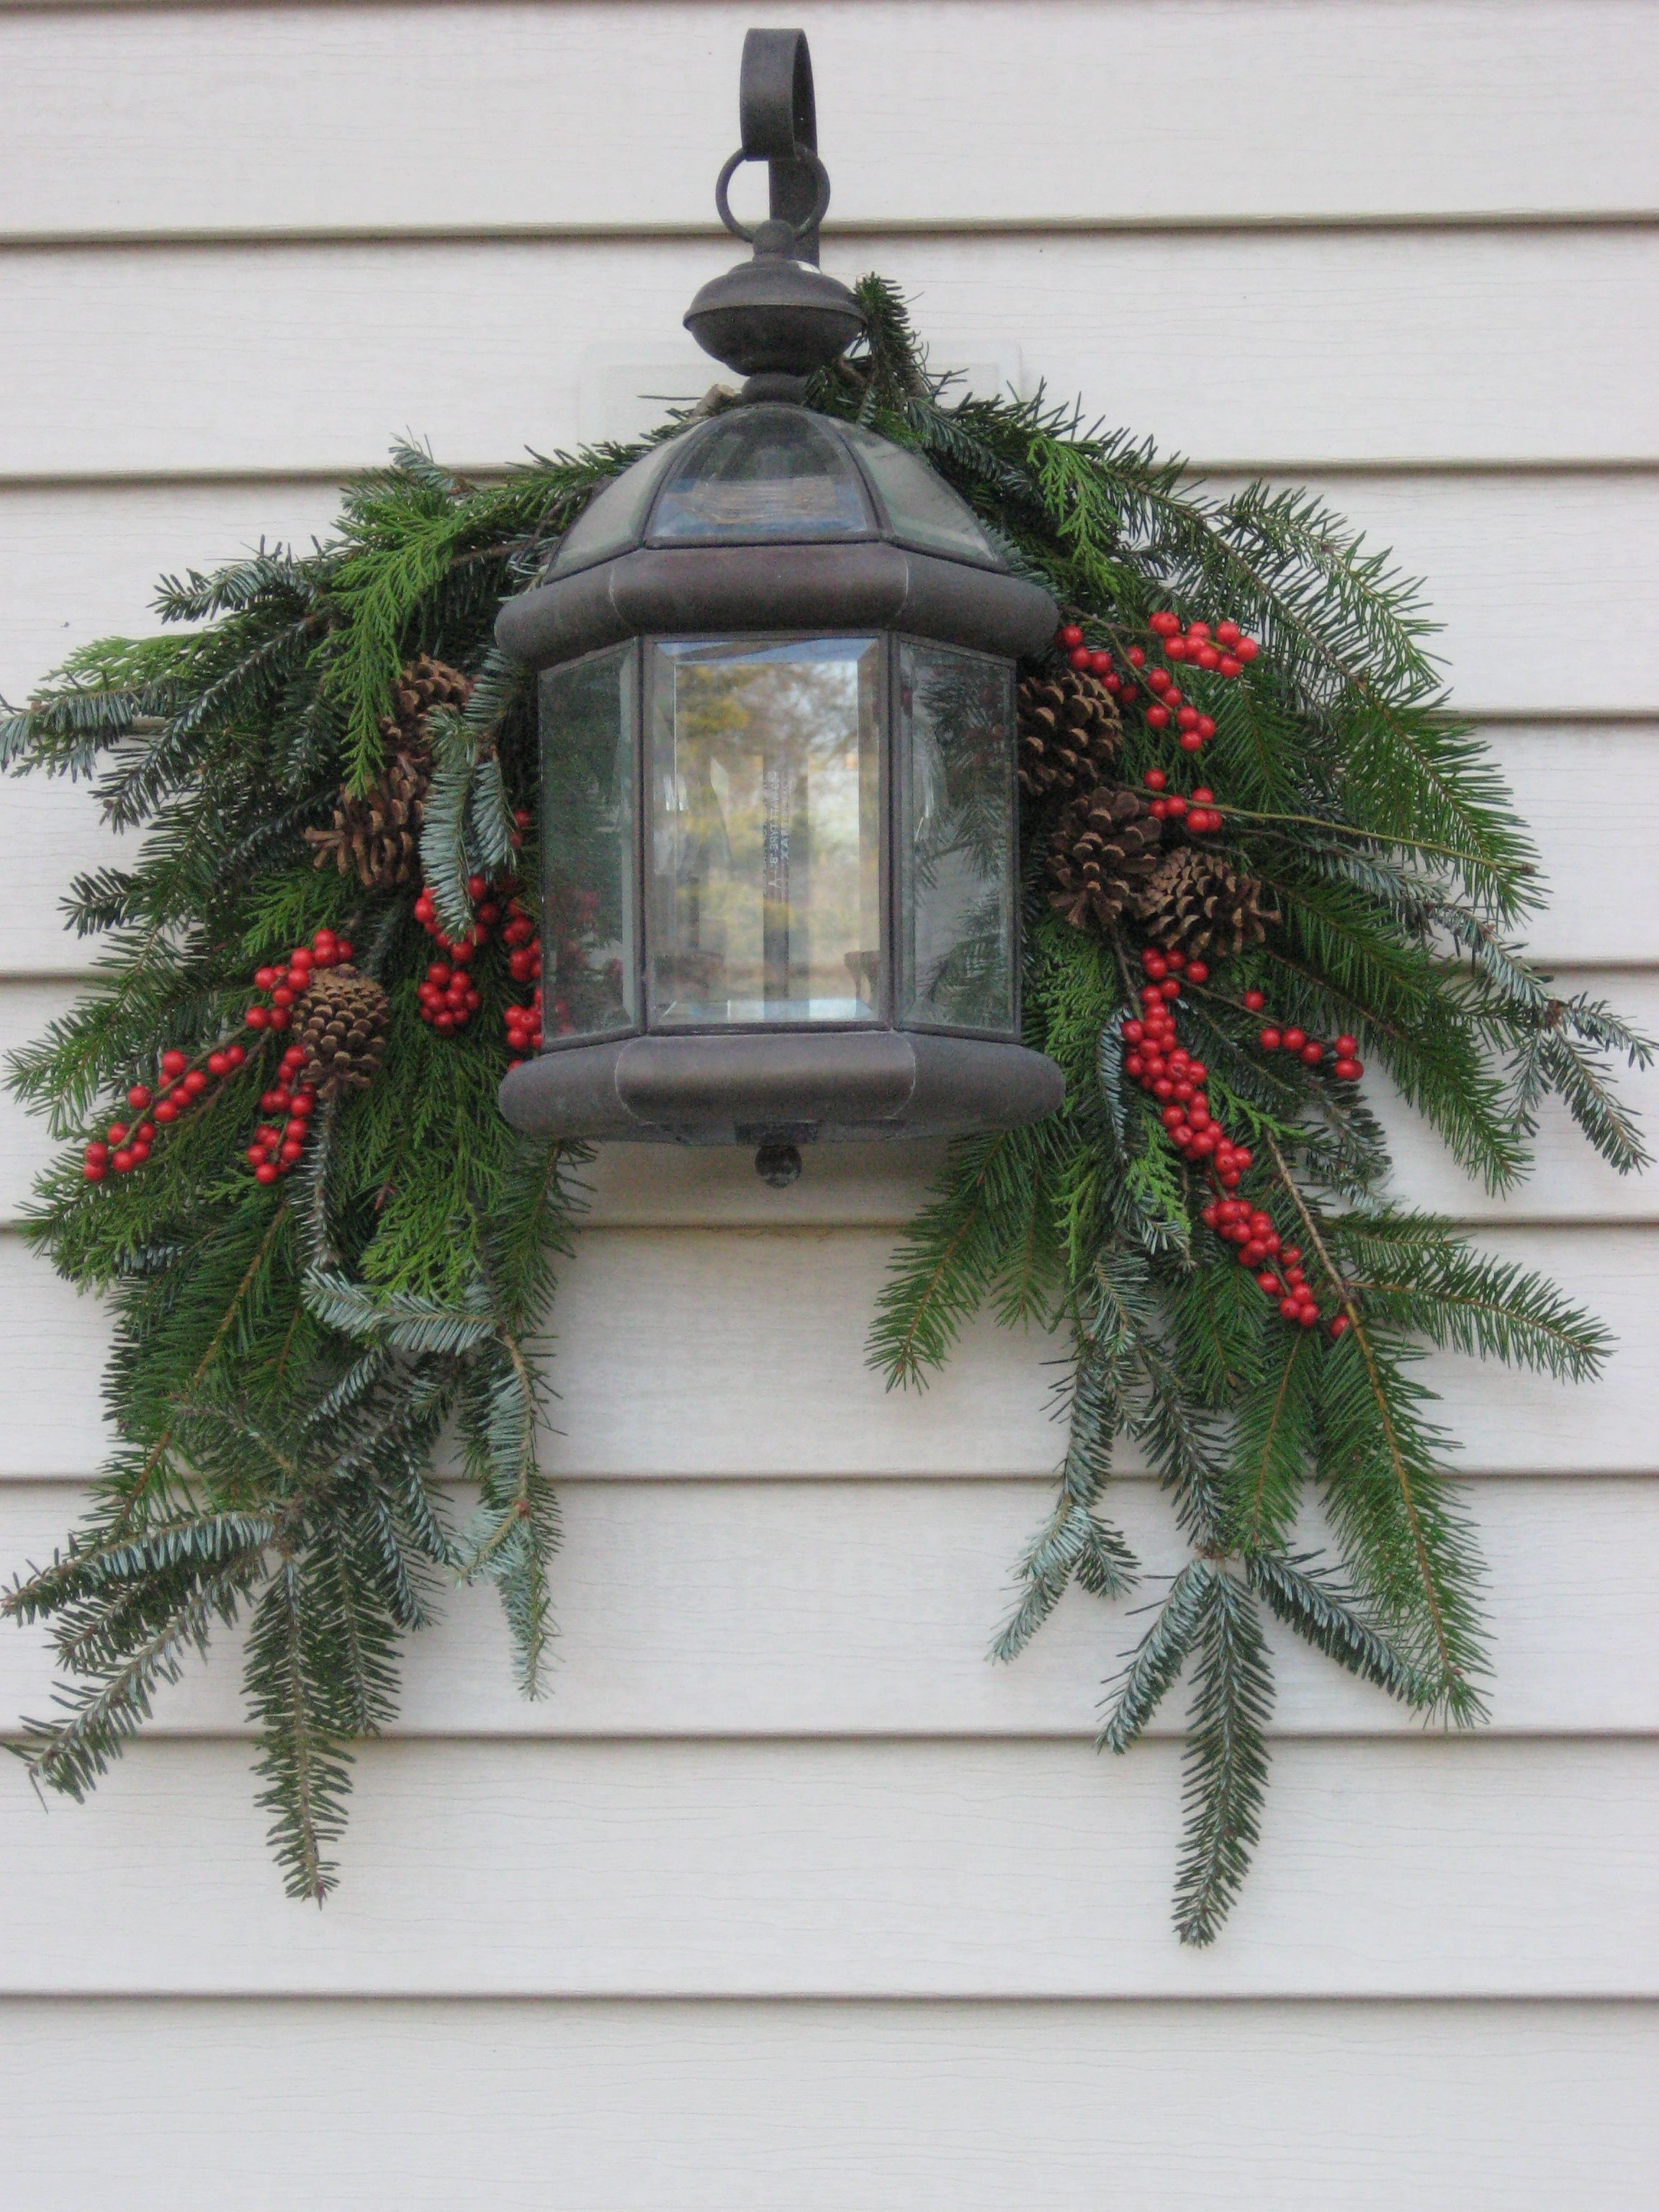 Current Outdoor Lanterns For Christmas With Regard To A Guide To Beautiful (And Not Tacky) Outdoor Holiday Decor (View 4 of 20)